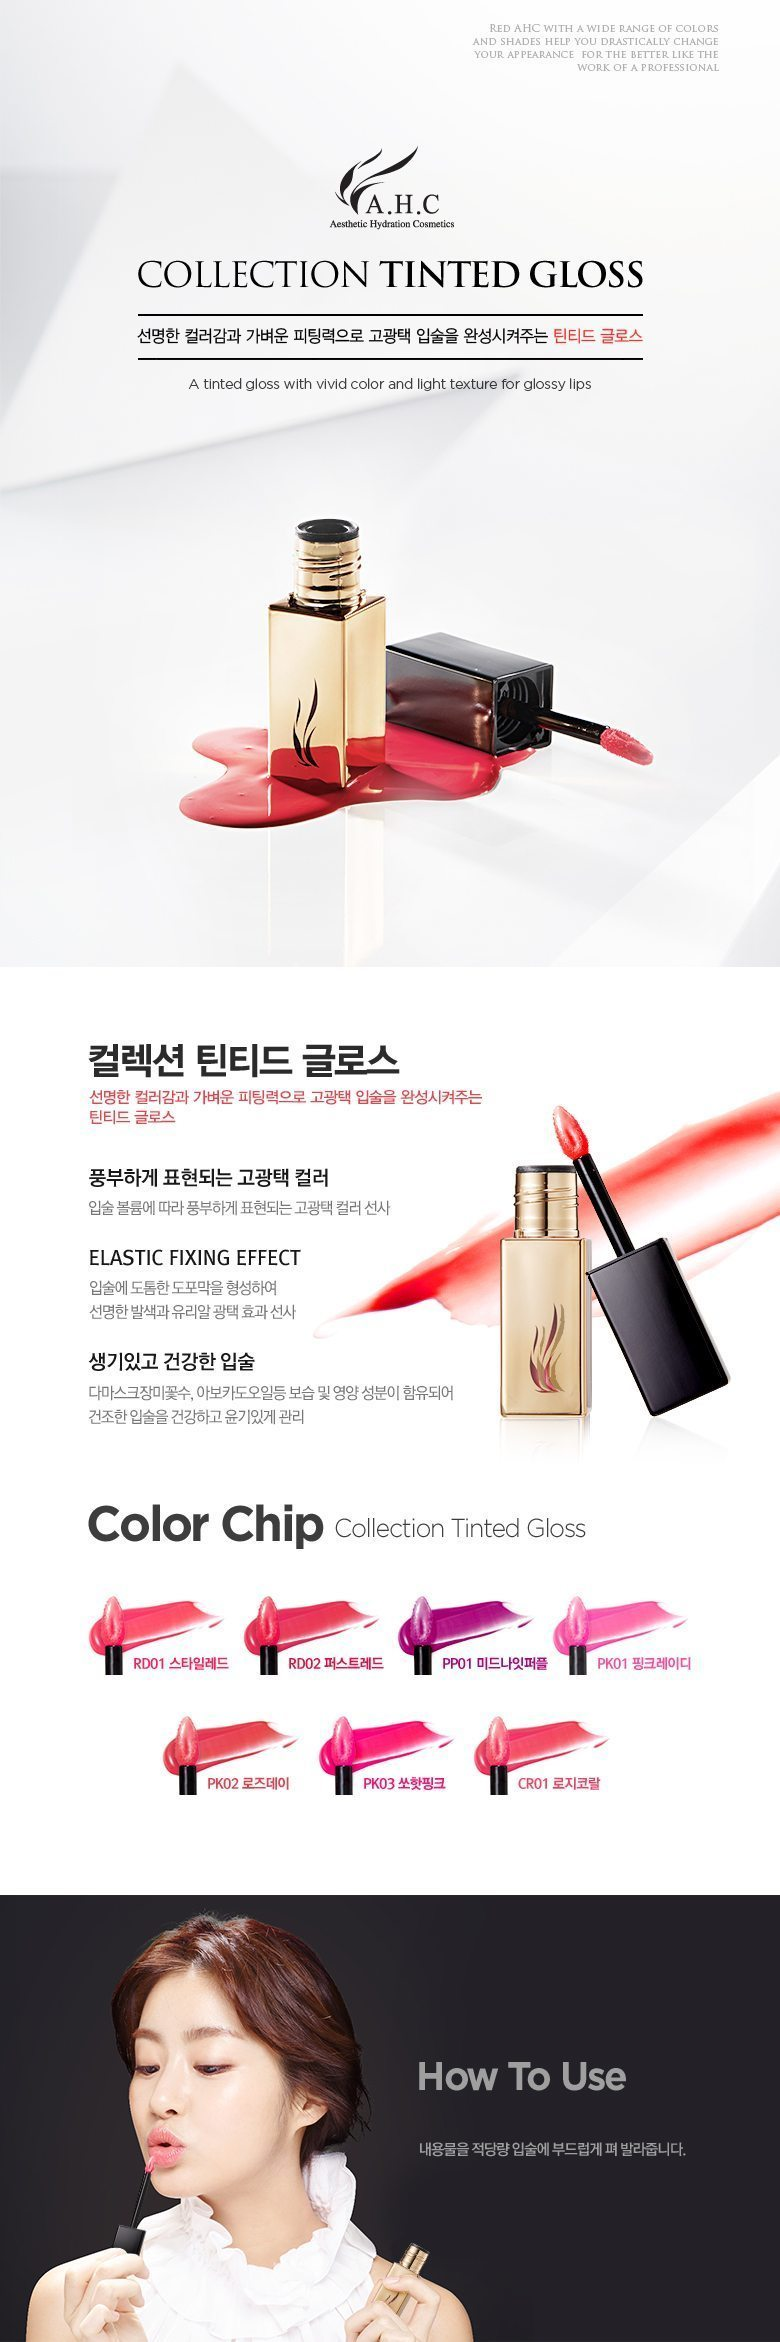 AHC Collection Tinted Gloss 12g malaysia singapore indonesia